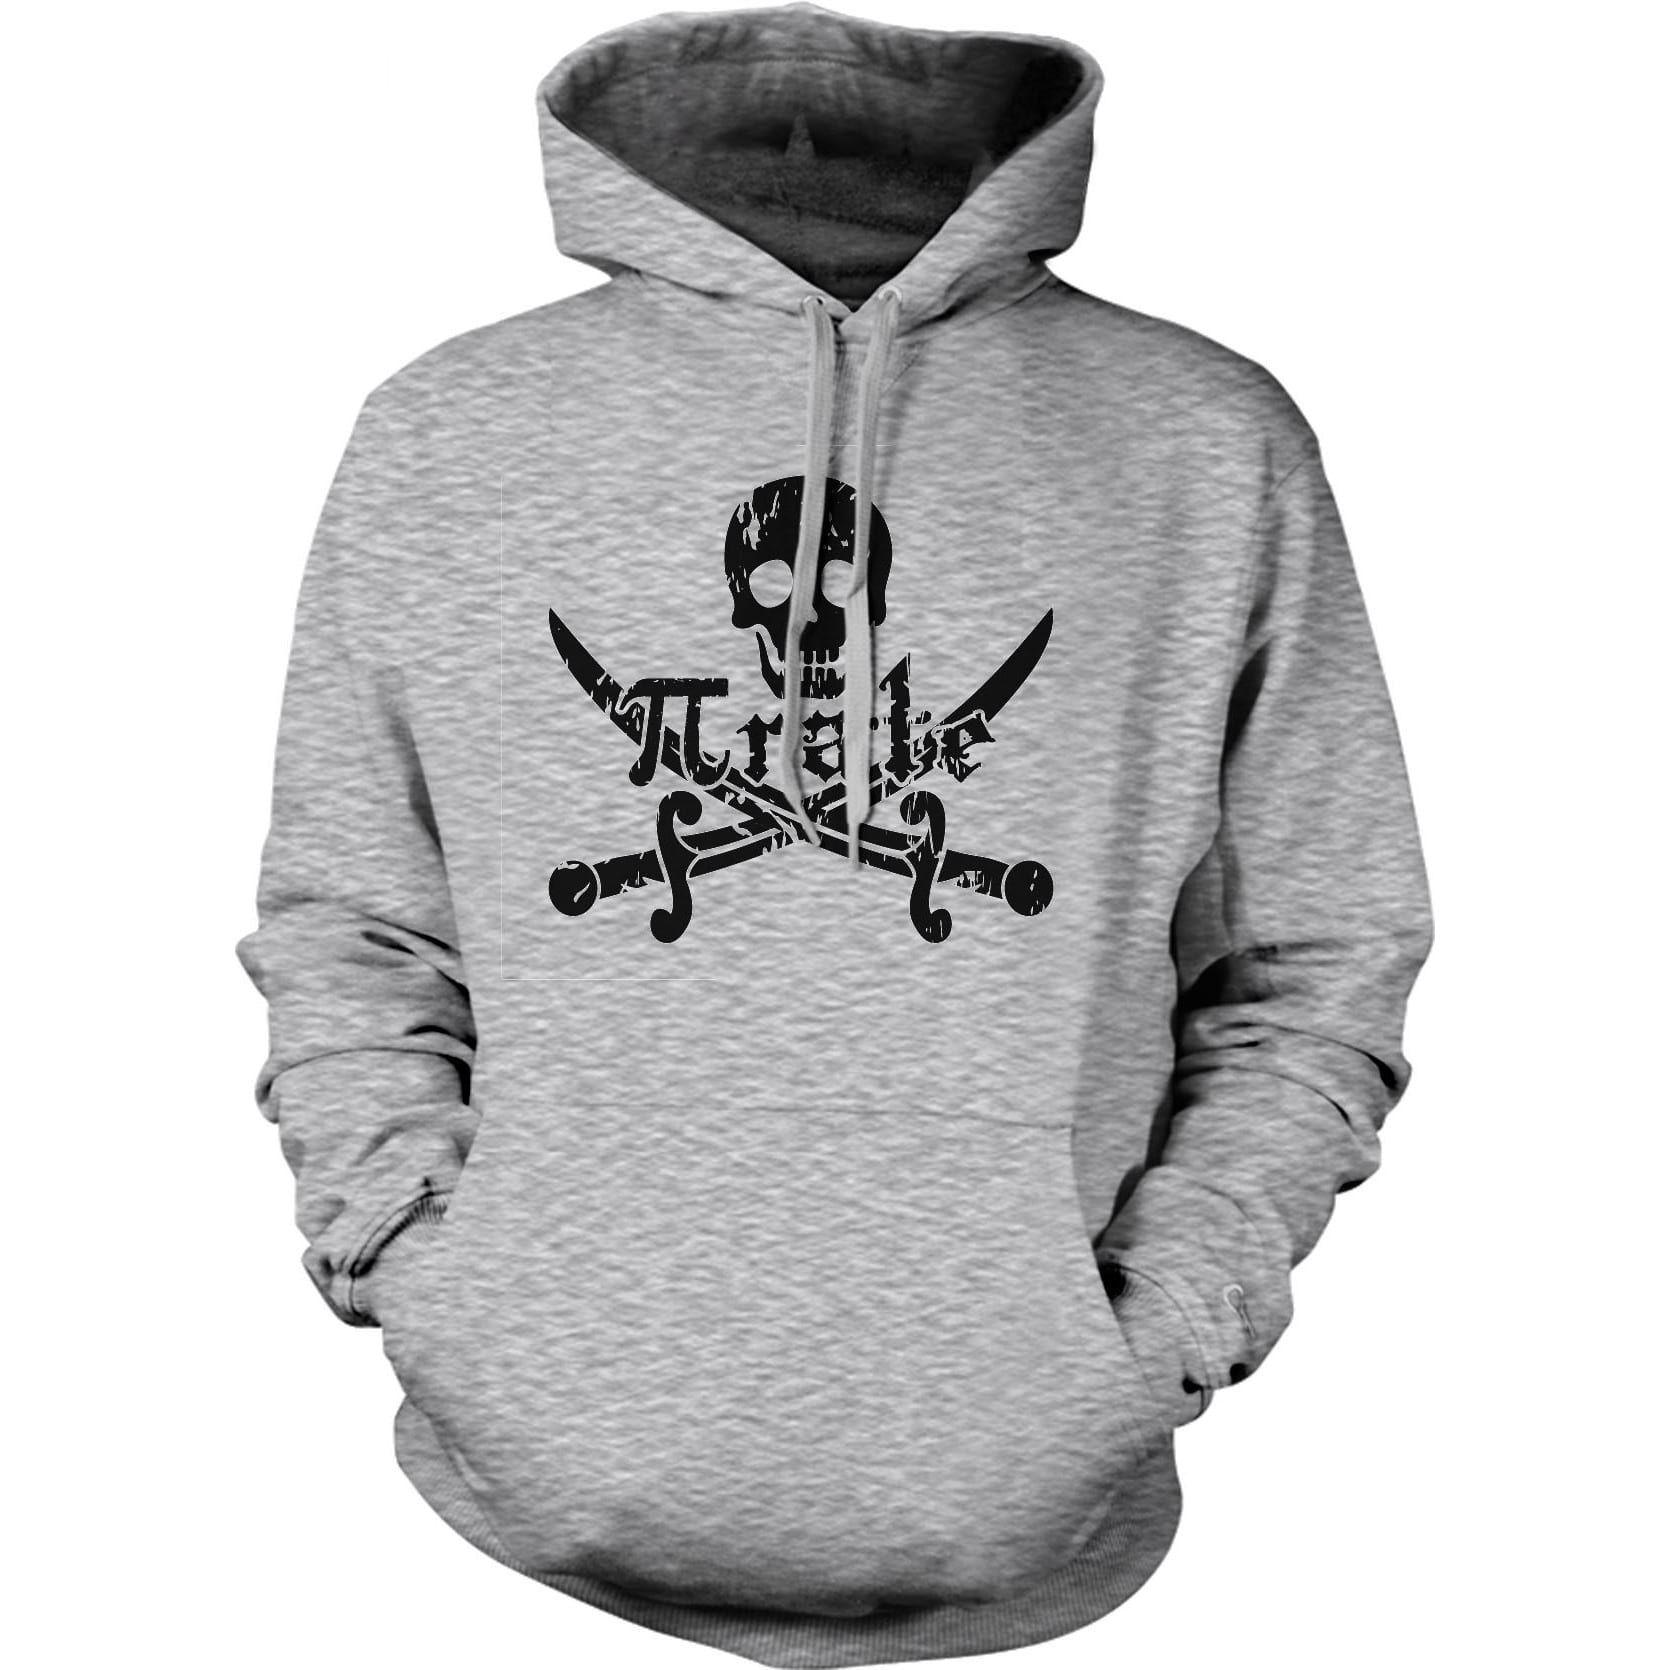 Crazy Dog T-shirts Pirate Skull and Crossbones Hoodie Math Pi-Rate Funny  Hooded 51b6f75a8